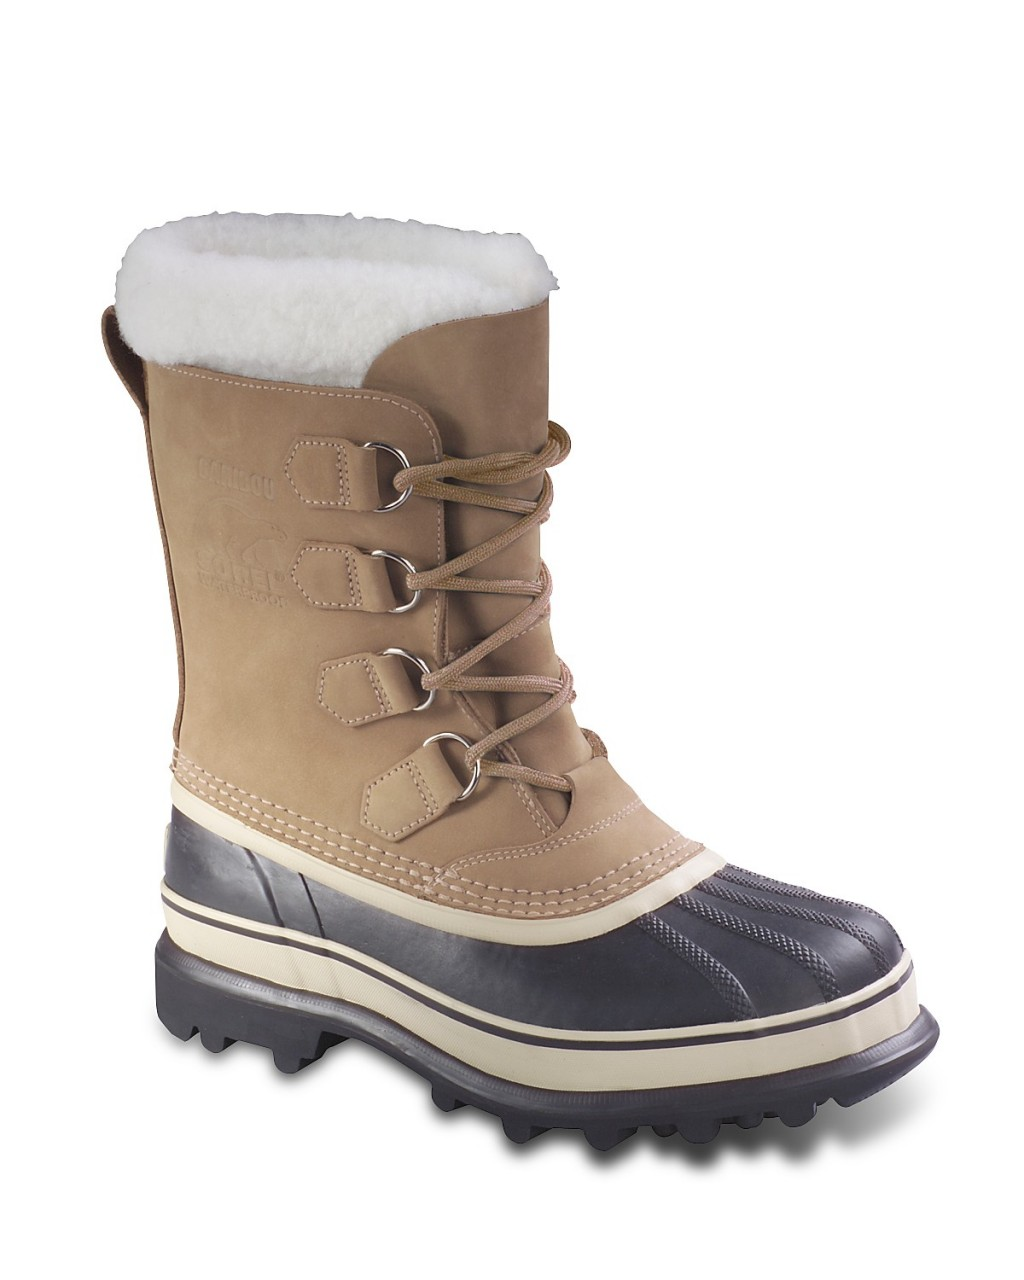 Breathtaking Sorel Snow Boots For Women Image Gallery in Shoes